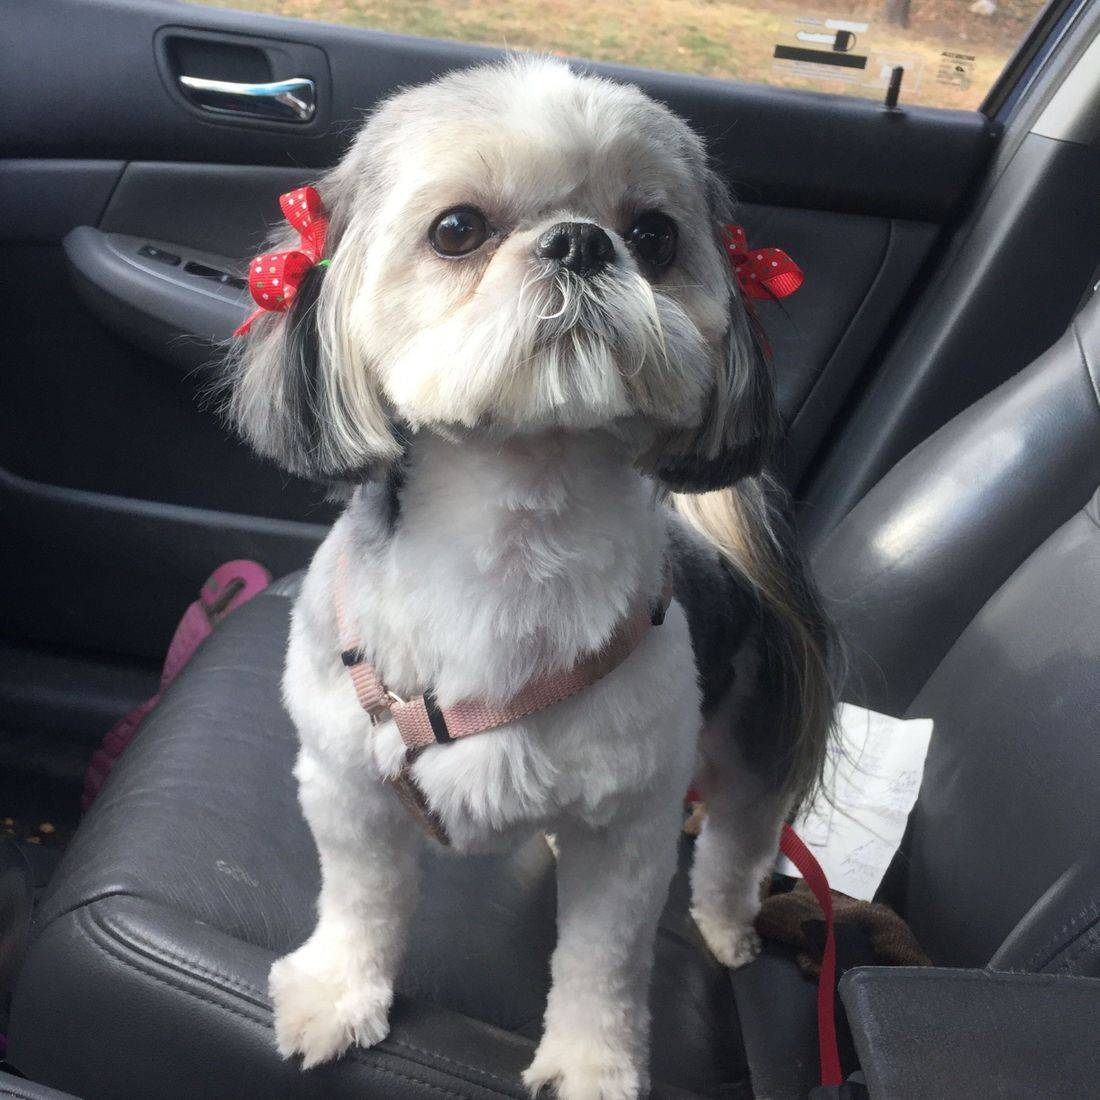 Photo of a cute dog with bows in her hair